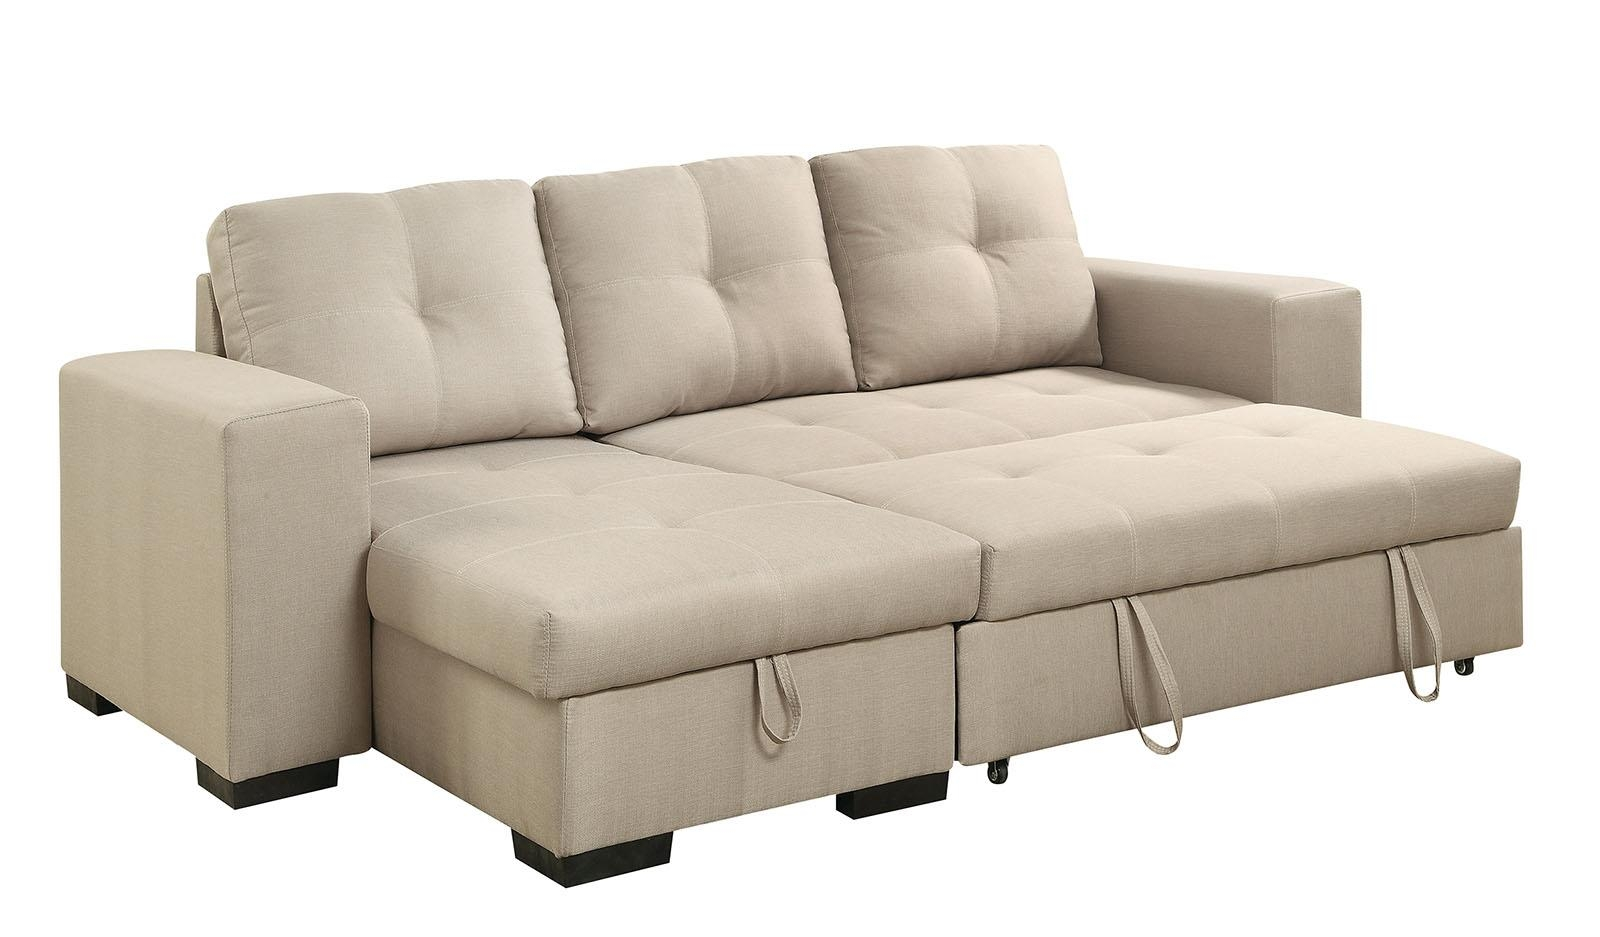 Denton Contemporary Style Ivory Fabric Sofa Sectional W/ Pull Out Bed Regarding Pull Out Sectional (Image 9 of 20)